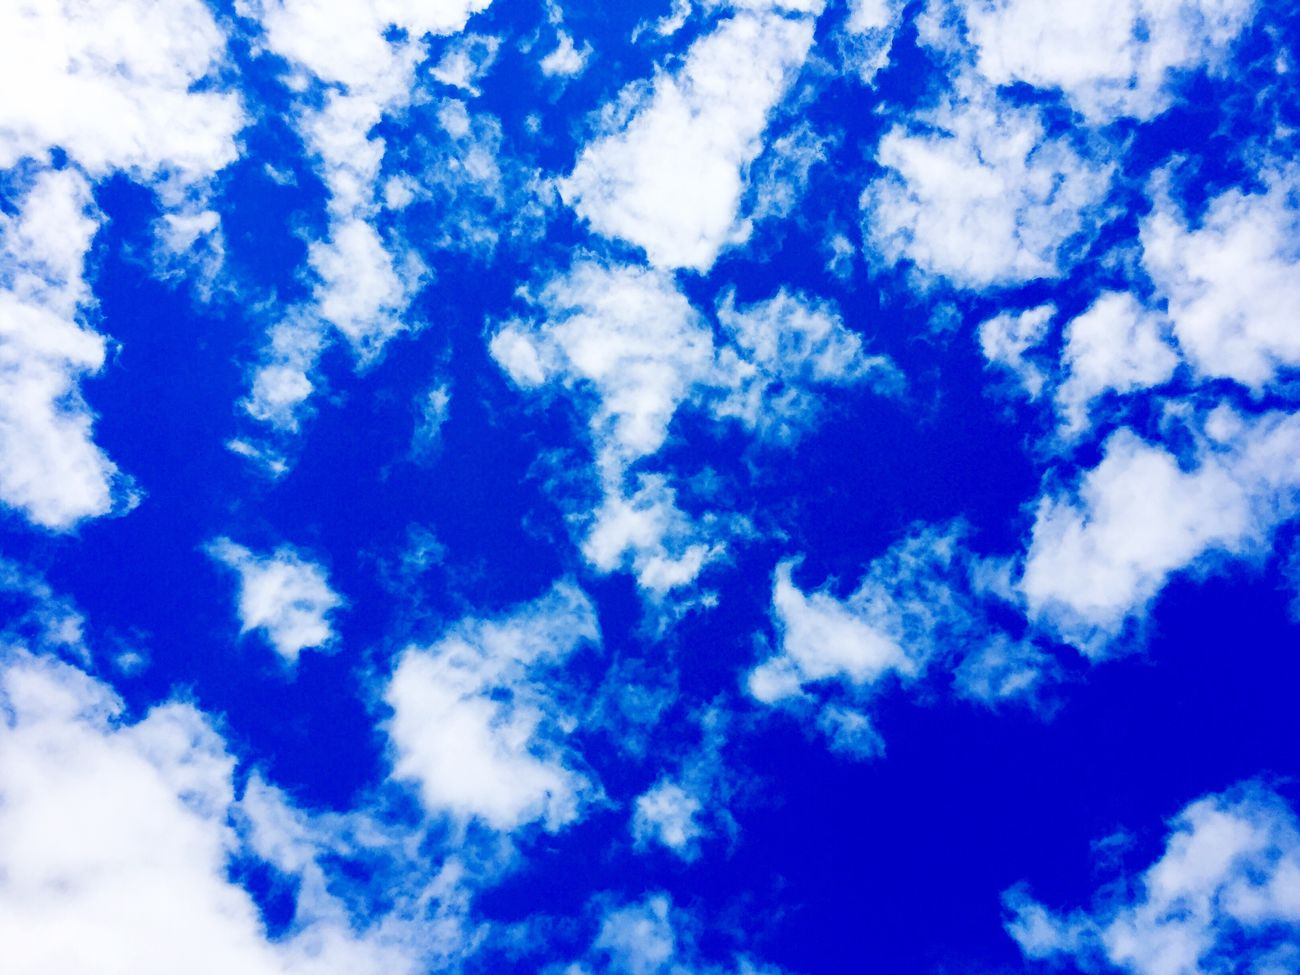 Blue Backgrounds Sky Cloud - Sky Nature Beauty In Nature Low Angle View Full Frame Scenics White Color Sky Only No People Day Tranquility Outdoors Sky And Clouds Sky_collection Himmel Himmel Und Wolken Himmelskunst Himmel♥ небо небо облака небо и облака облака